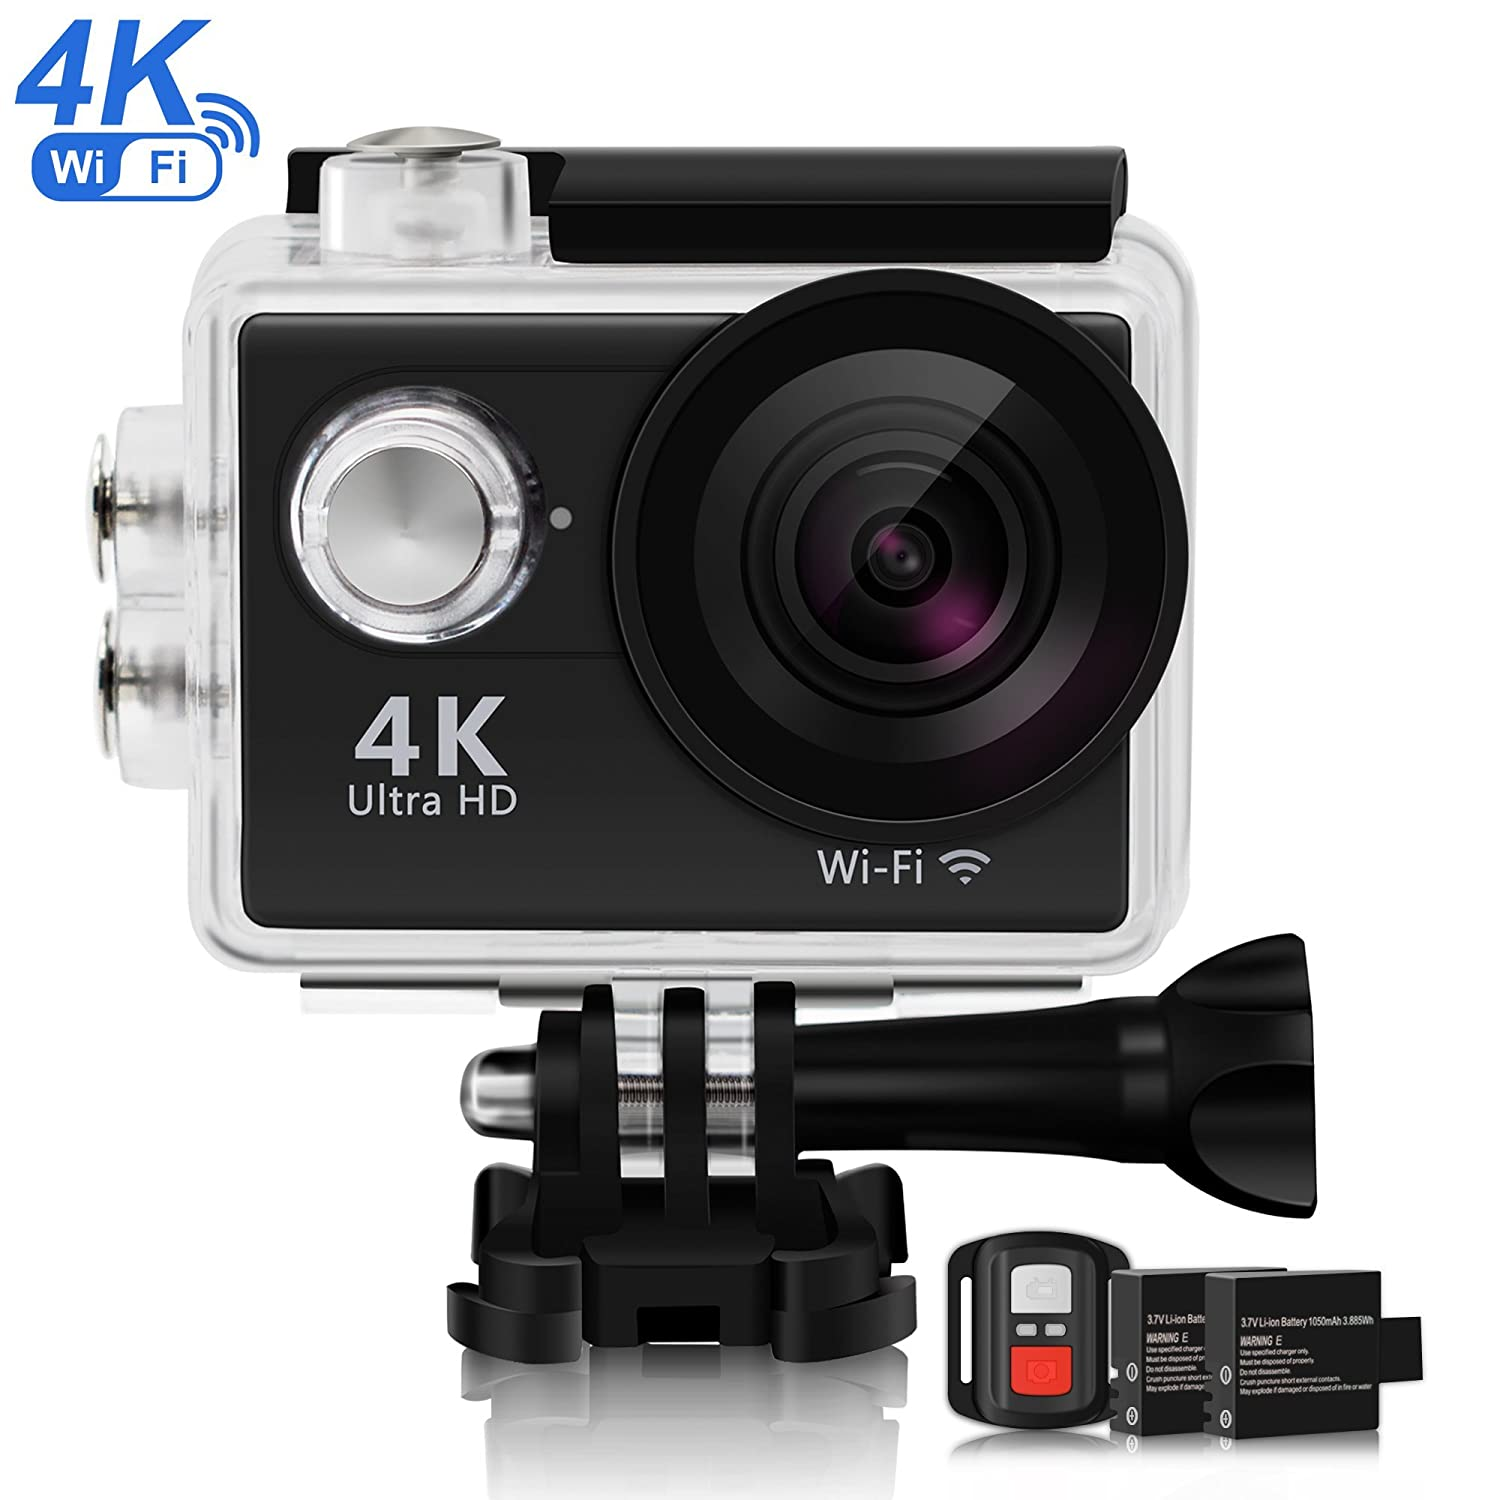 4K Sports Action Camera, SMBOX 620C (2018 New Version) 12MP WIFI Waterproof Cameras For Surfing Diving, Underwater 100FT, 170° Wide Angle Lens, Ultra HD Helmet Camera W/2 Batteries/2.4G Remote Control/19 Accessories 170° Wide Angle Lens